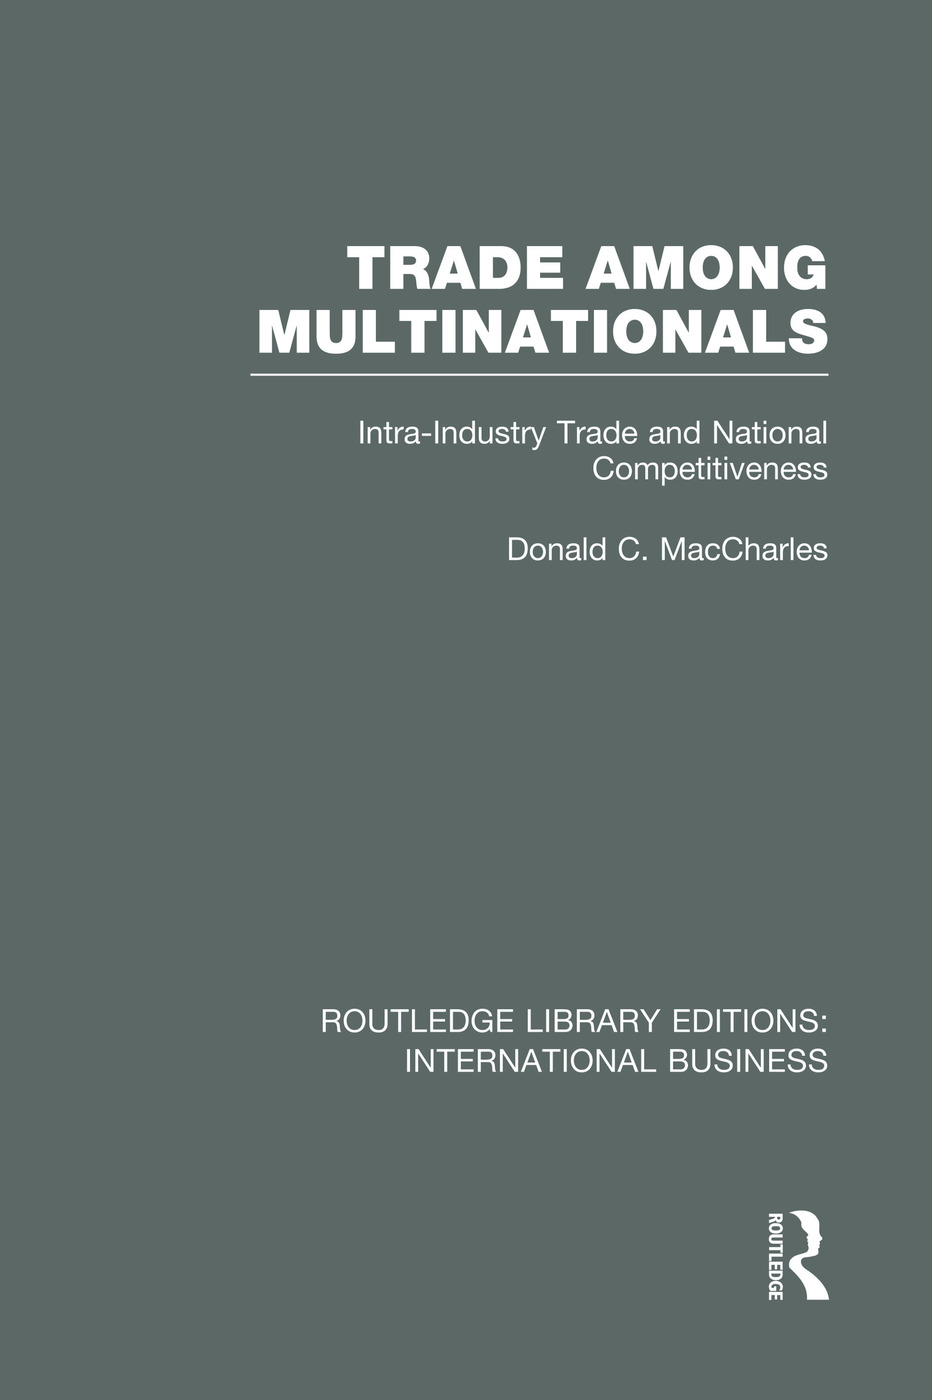 Trade Among Multinationals (RLE International Business): Intra-Industry Trade and National Competitiveness book cover